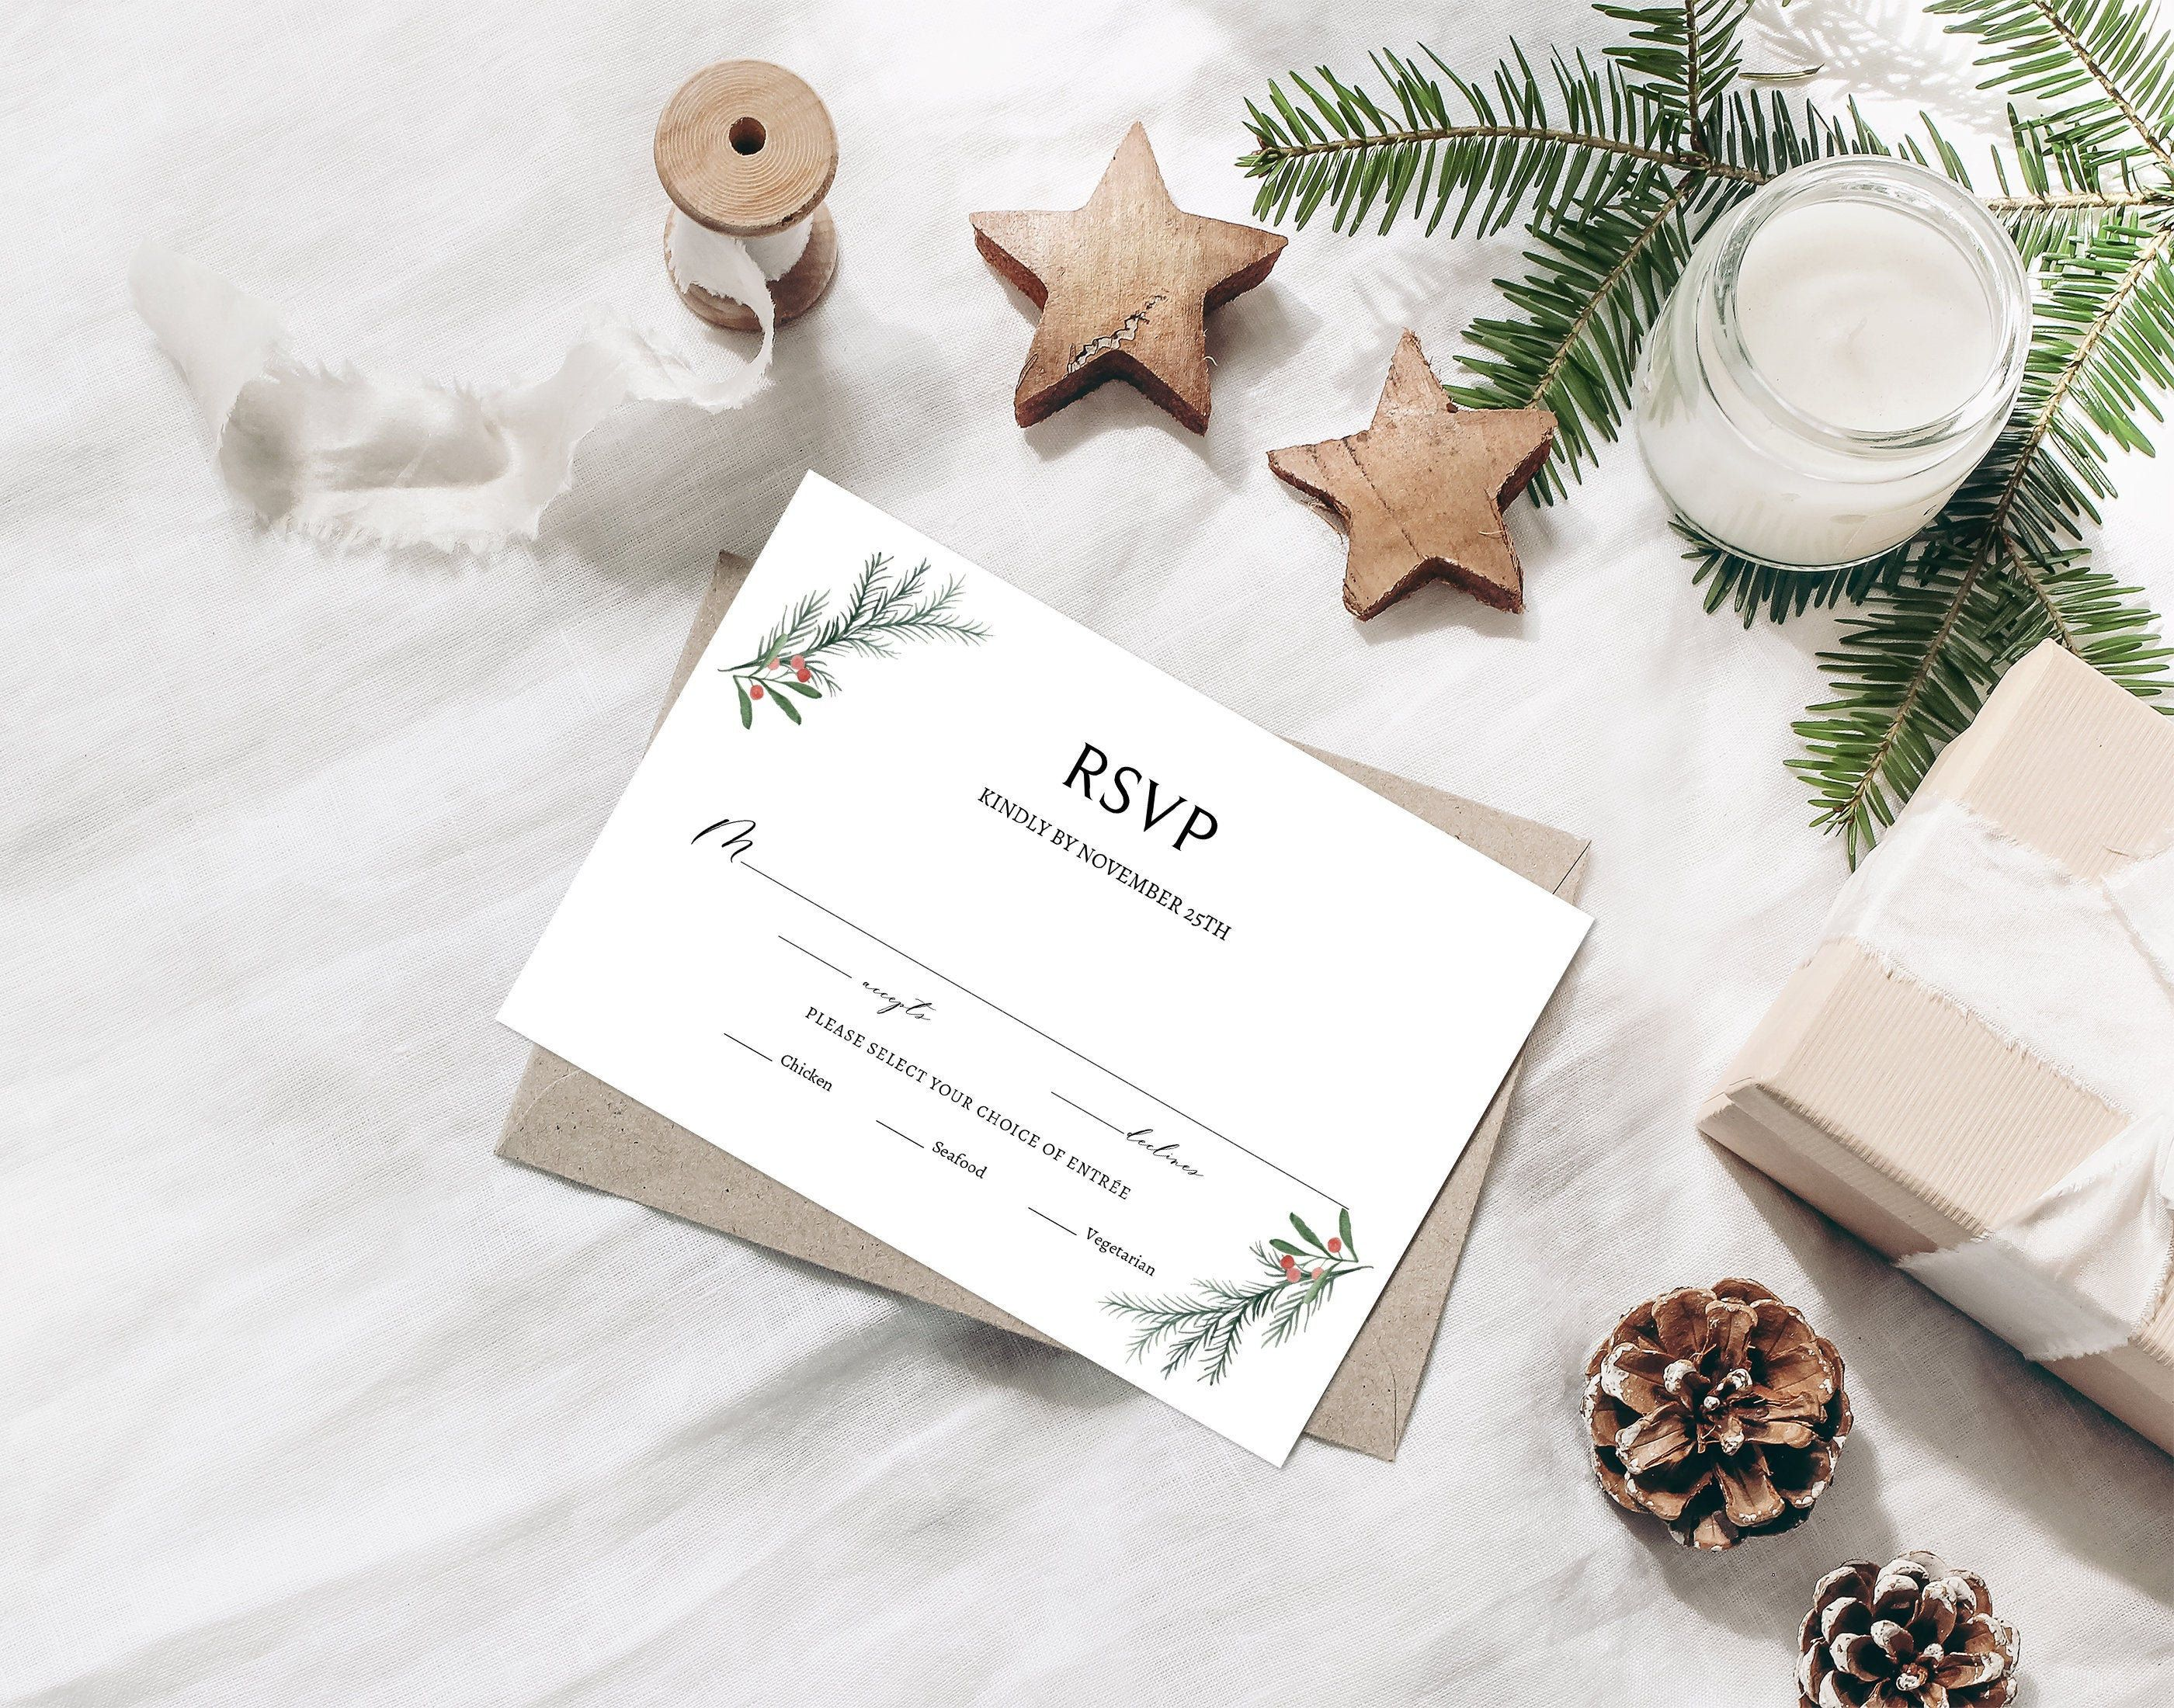 Winter Wedding Rsvp Card Editable Template Christmas Response Card Rustic Reply Card Holid Minimalist Christmas Card Rsvp Wedding Cards Christmas Thank You